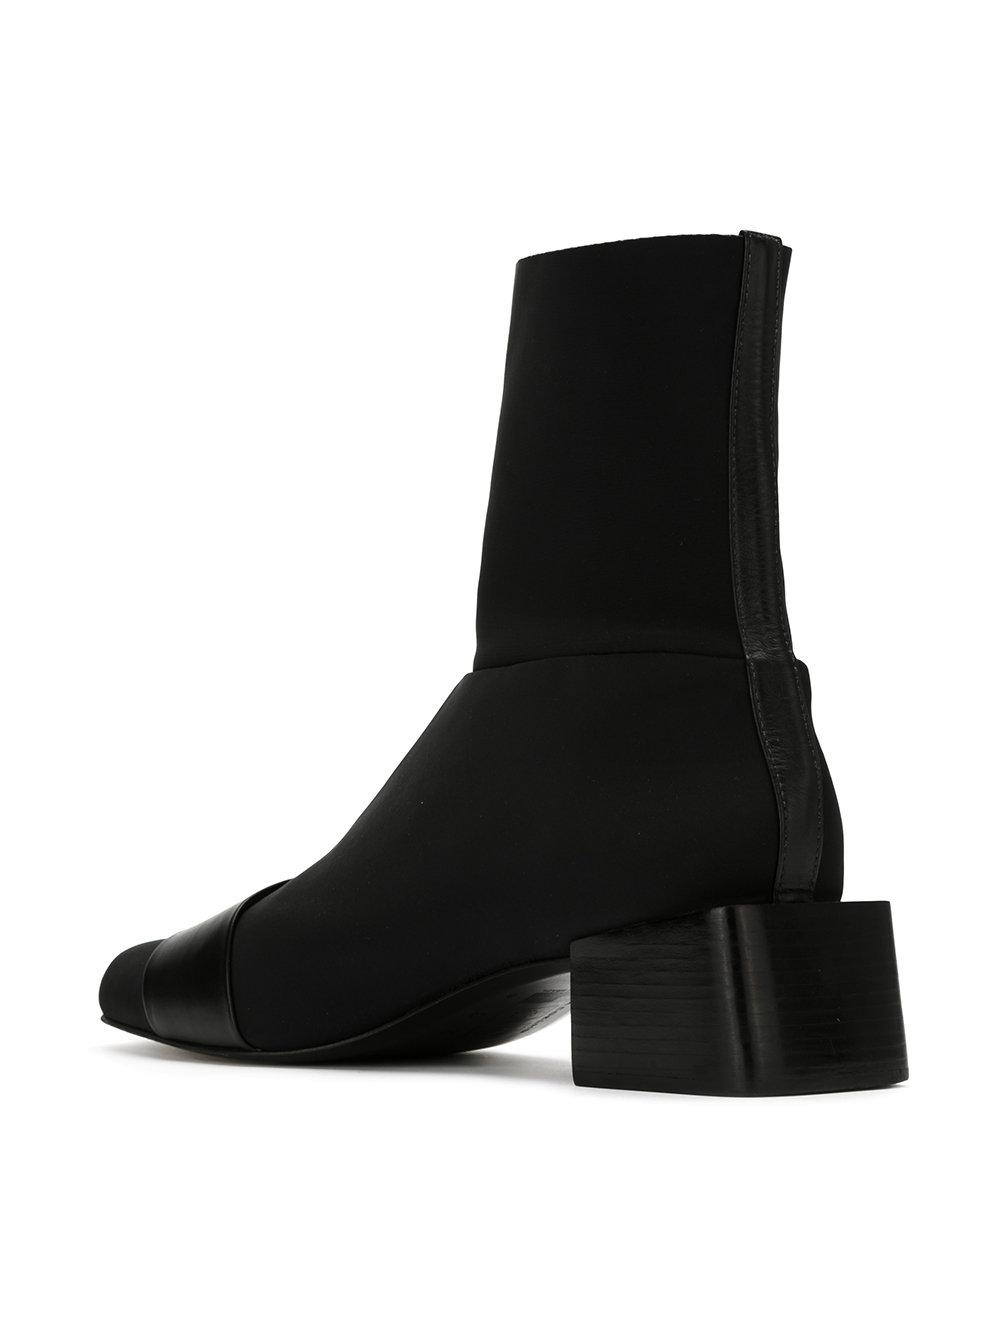 Gloria Coelho Asymmetric boots Affordable Cheap Online Get Authentic Online Low Shipping Discount Low Shipping Find Great For Sale cQuSTEMK